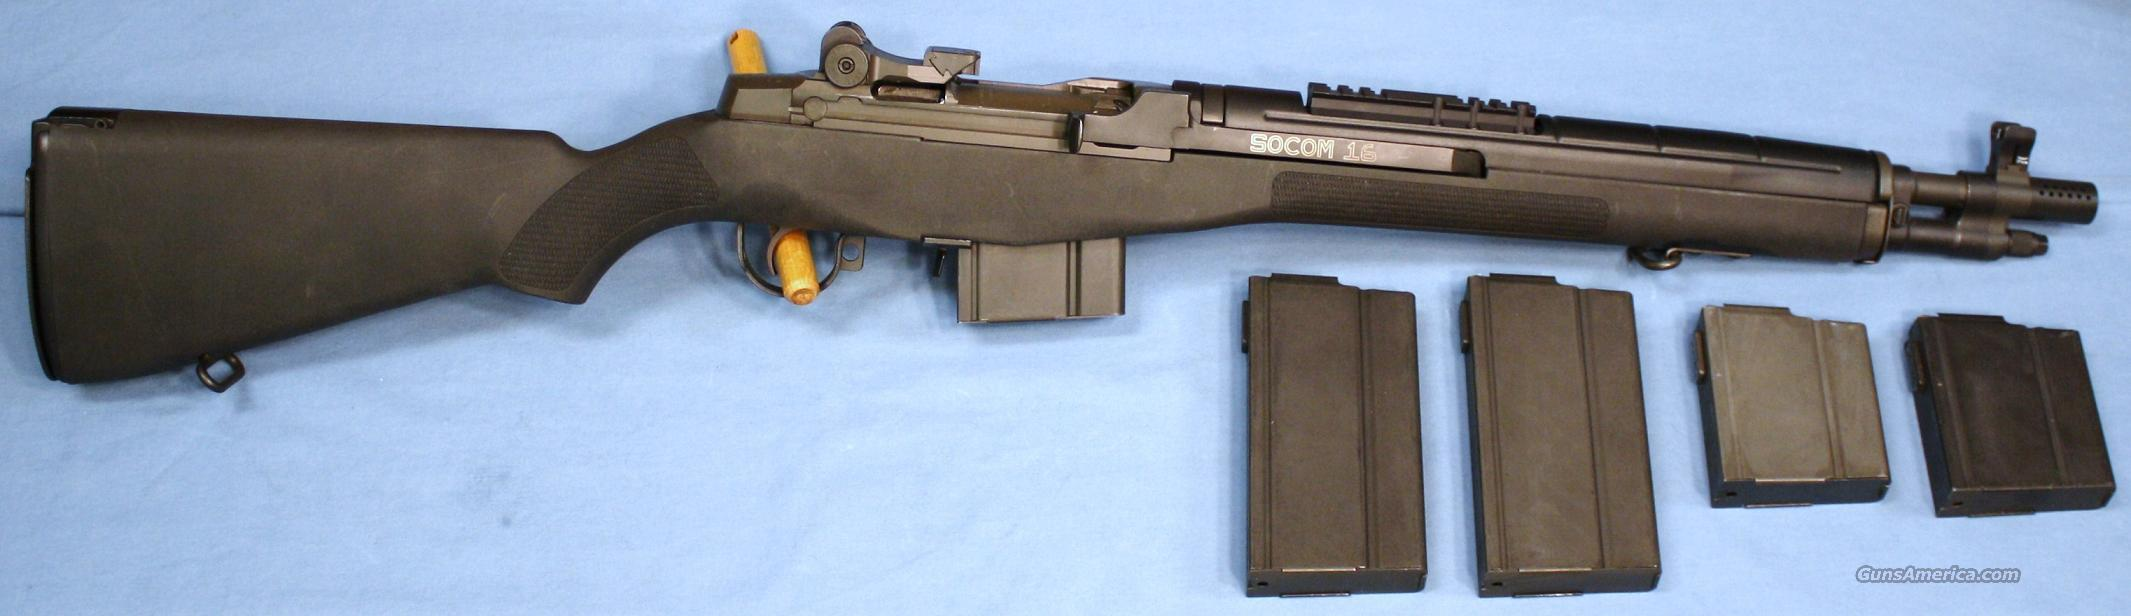 Springfield Armory M1A SOCOM-16 Semi-Automatic Rifle 7.62x51mm NATO .308 Win with 5 Magazines  Guns > Rifles > Springfield Armory Rifles > M1A/M14